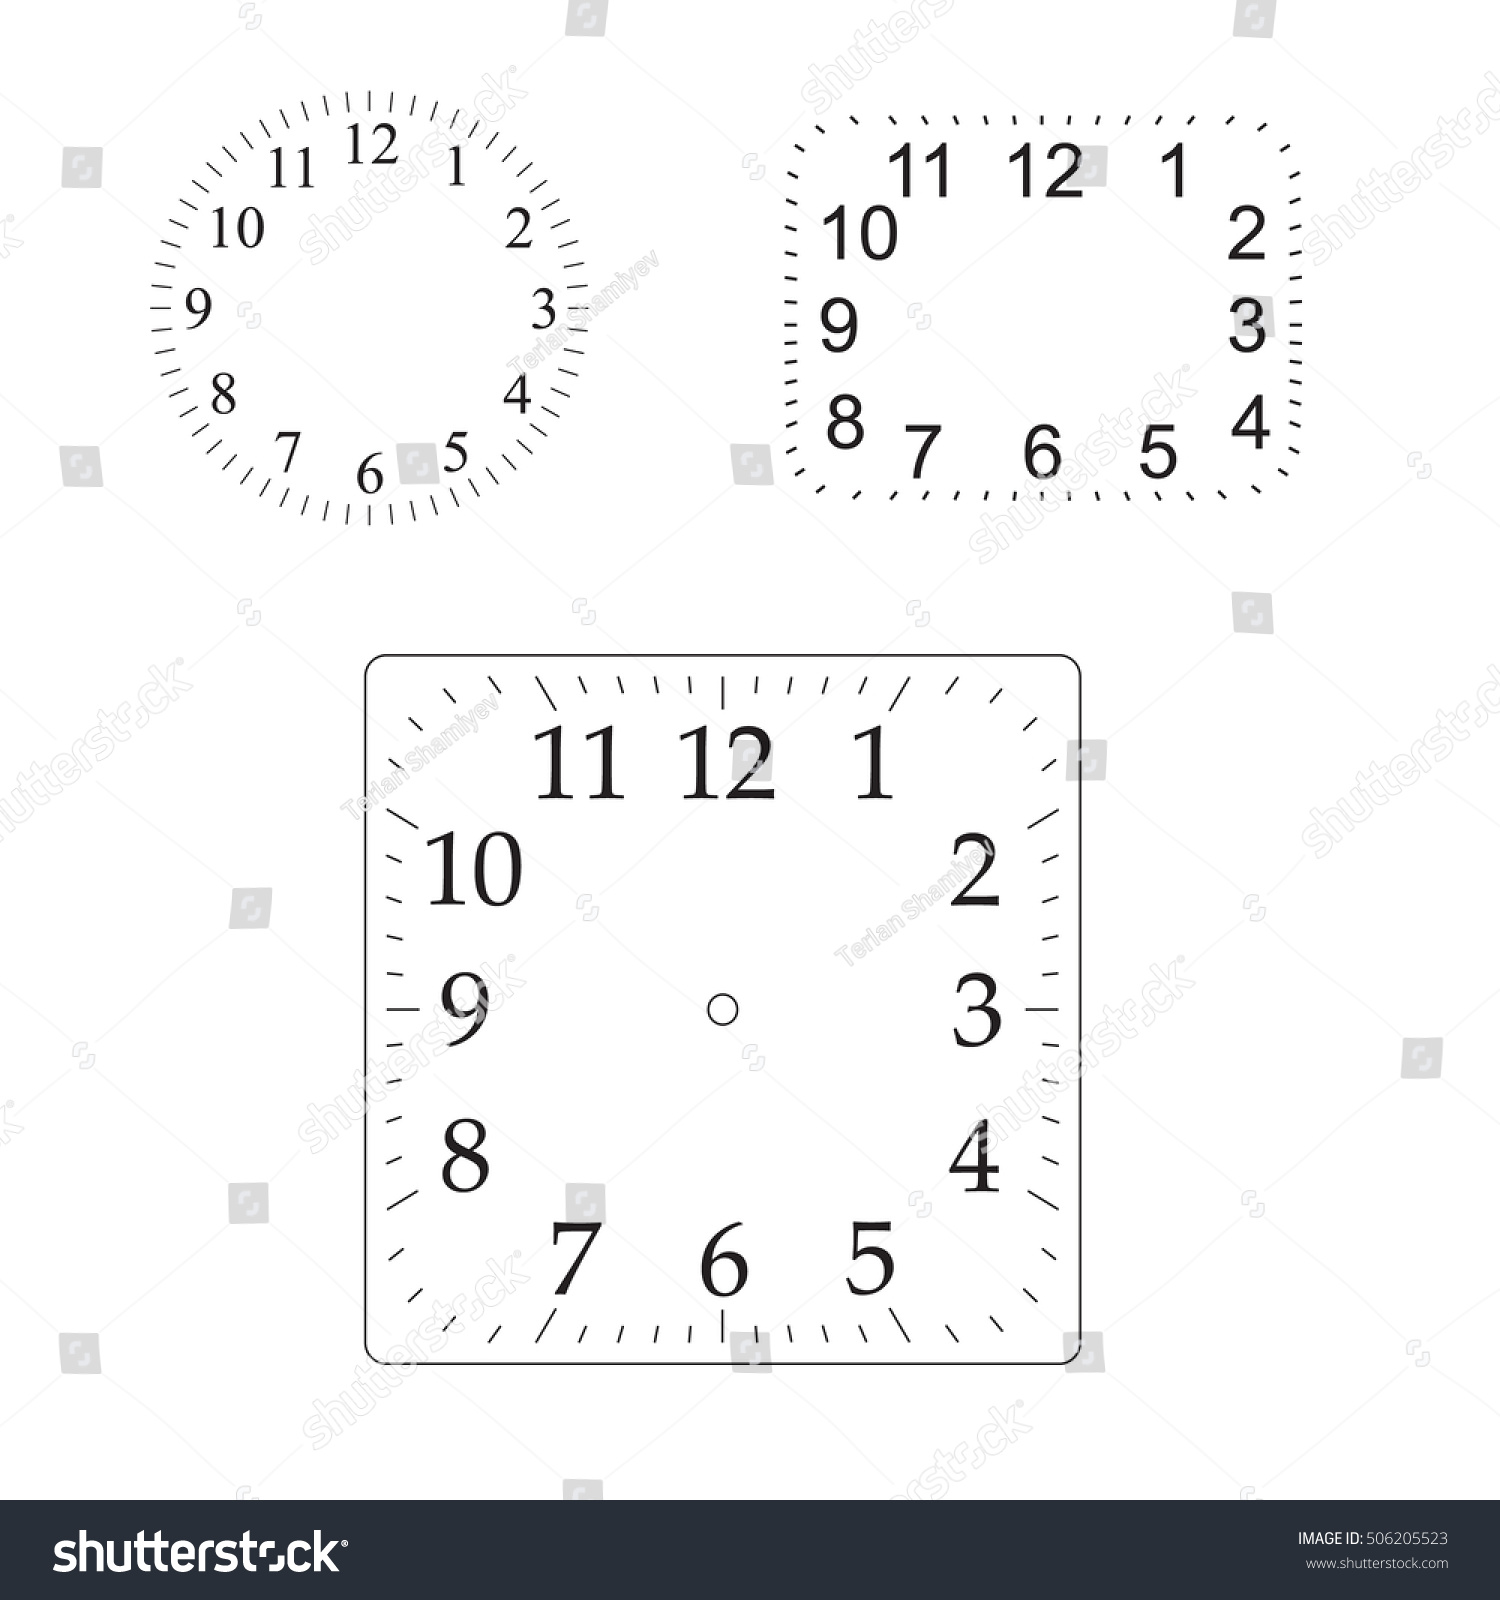 worksheet Number Line Without Numbers vector simple classic clock icon without stock 506205523 numbers with solid and flat color design